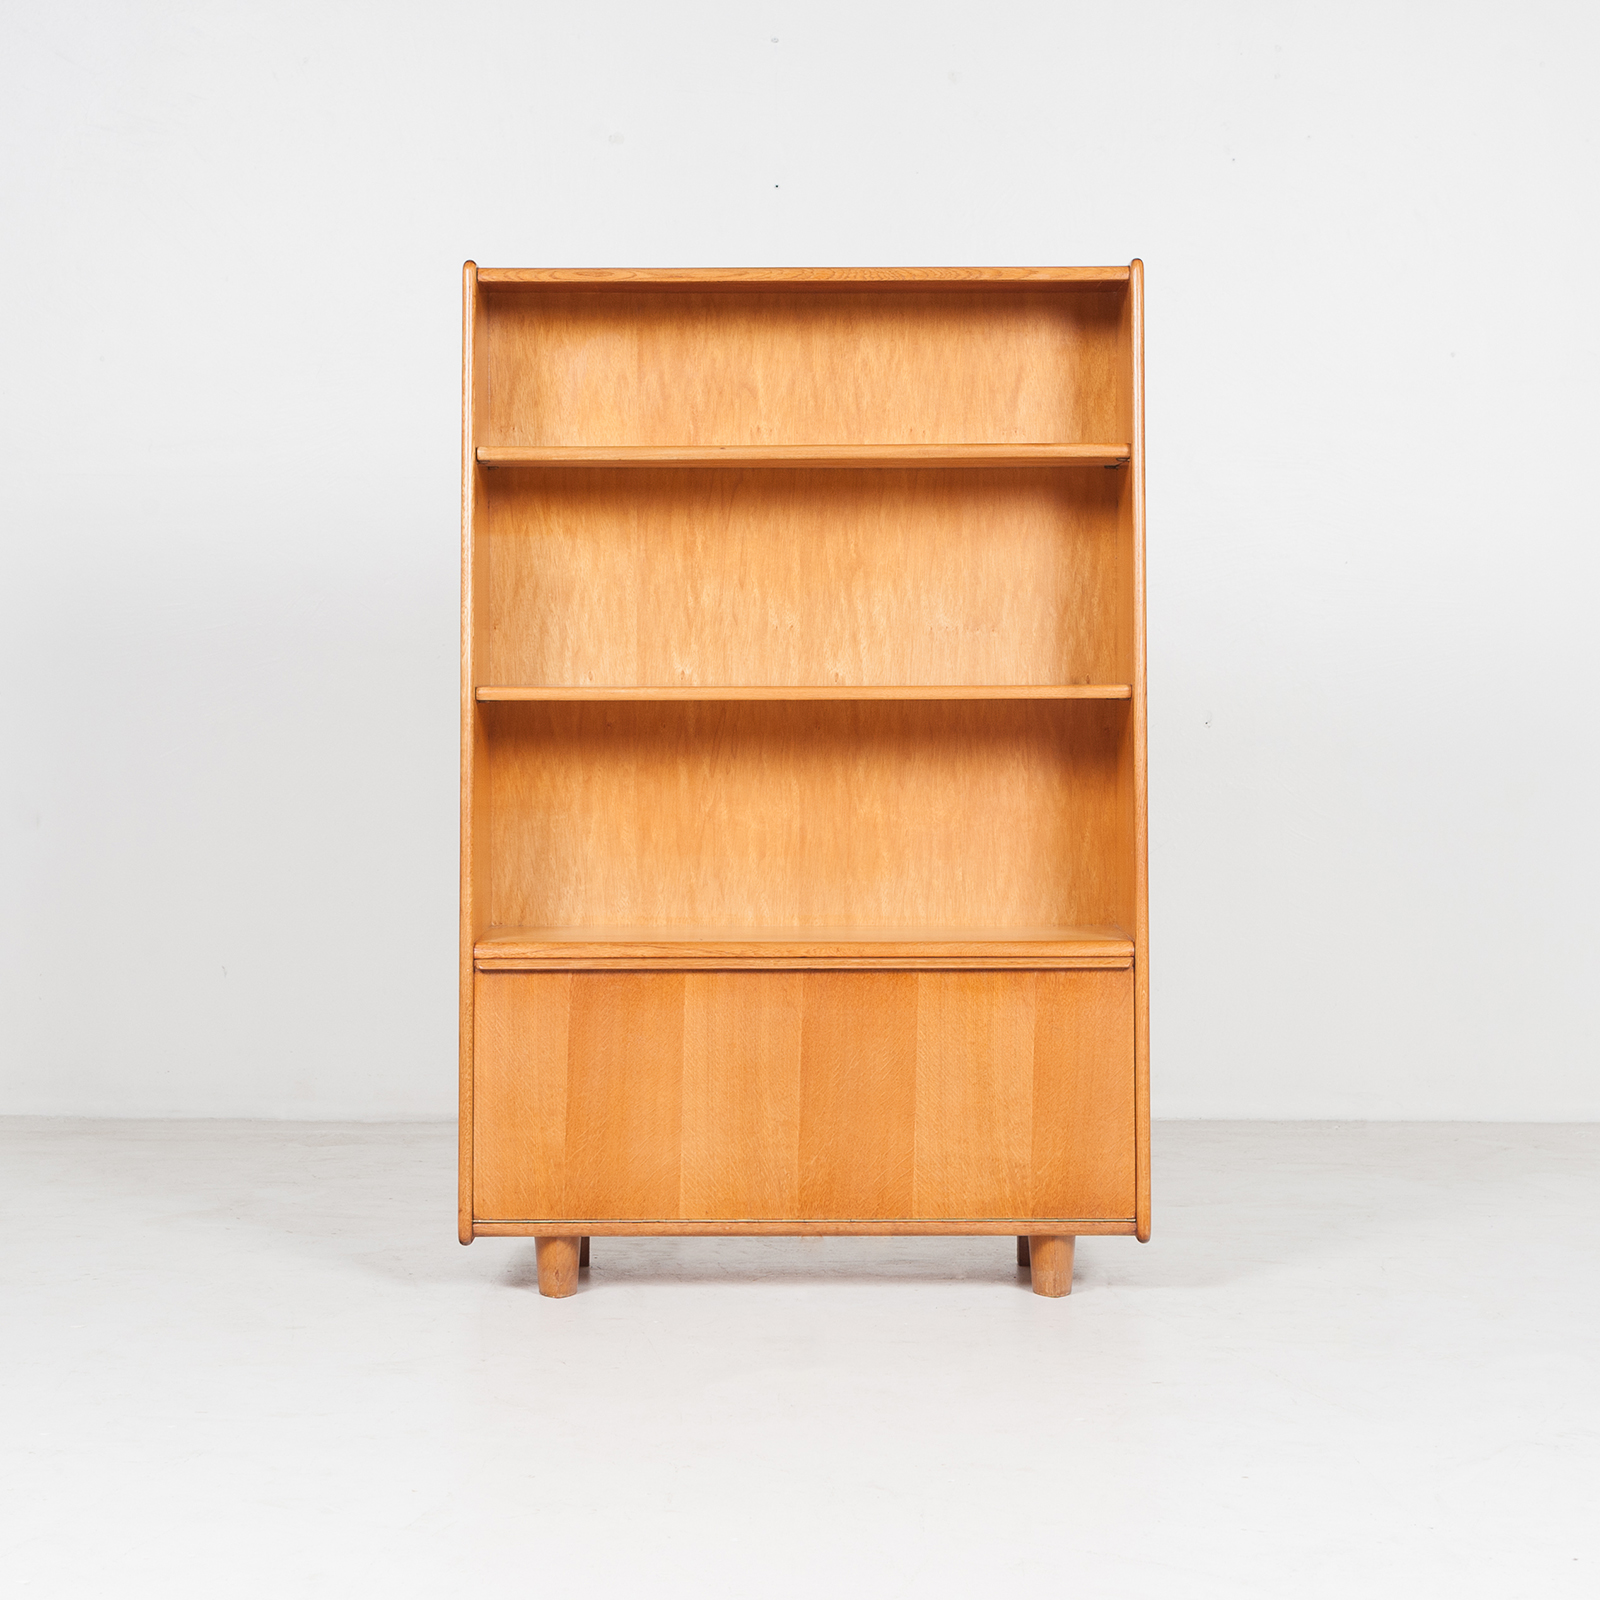 Model Be 03 Oak Series Bookcase By Cees Braakman For Pastoe, 1950s, The Netherlands 32